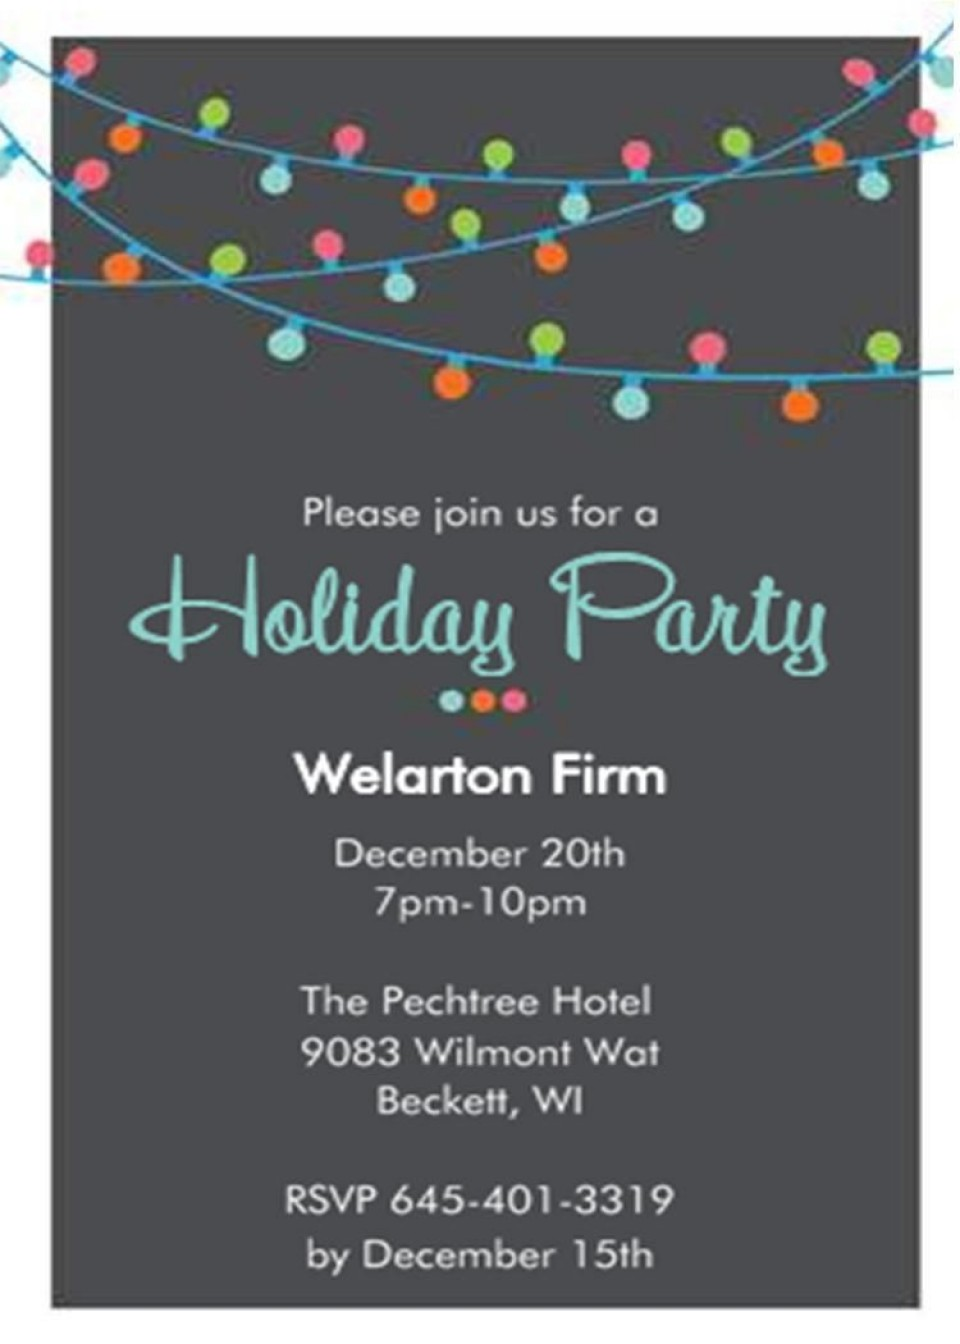 001 Incredible Office Christma Party Invitation Wording Sample Image  Holiday Example960